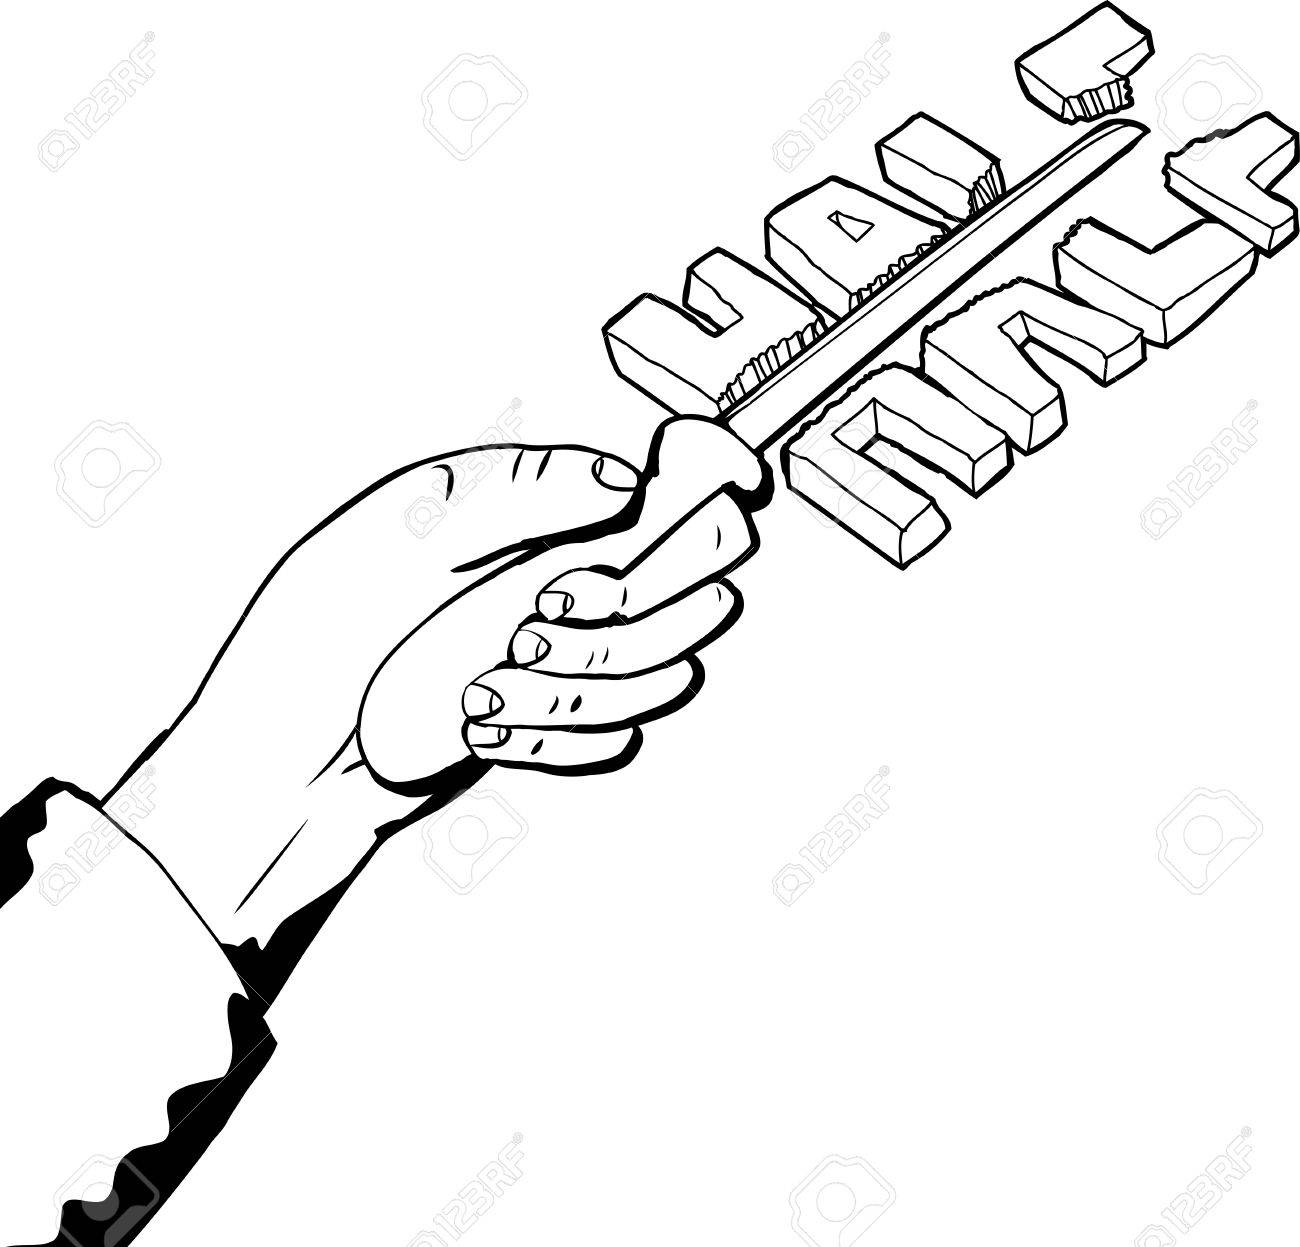 Outline illustration of hand cutting word in half with knife royalty outline illustration of hand cutting word in half with knife stock vector 42496510 voltagebd Image collections